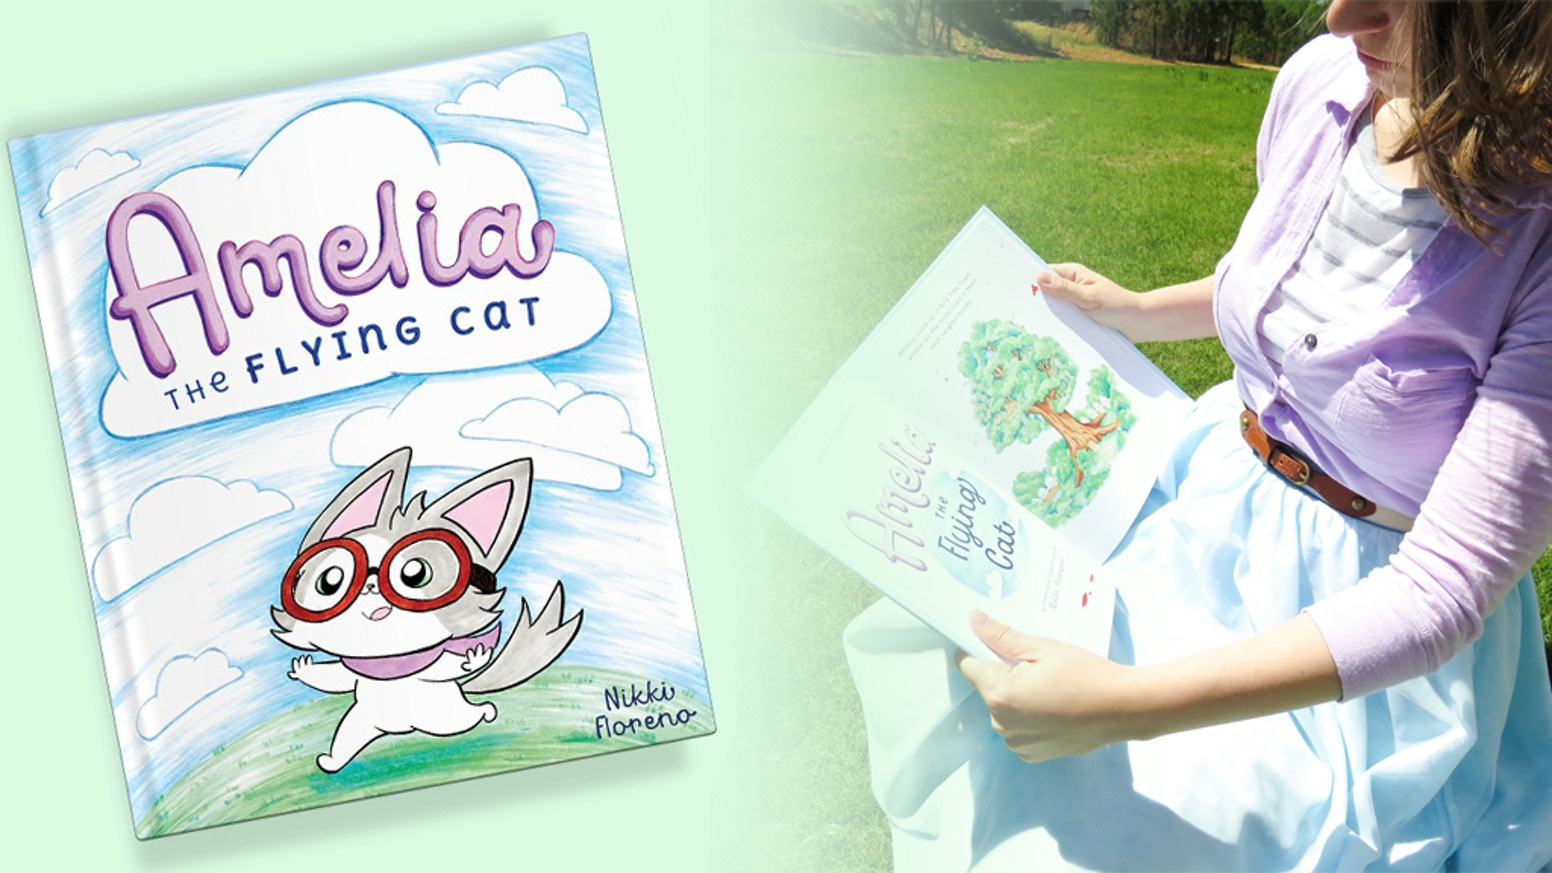 In this children's book, Amelia, a cat adopted by birds, learns falling down isn't easy, but that won't stop her from learning to fly.